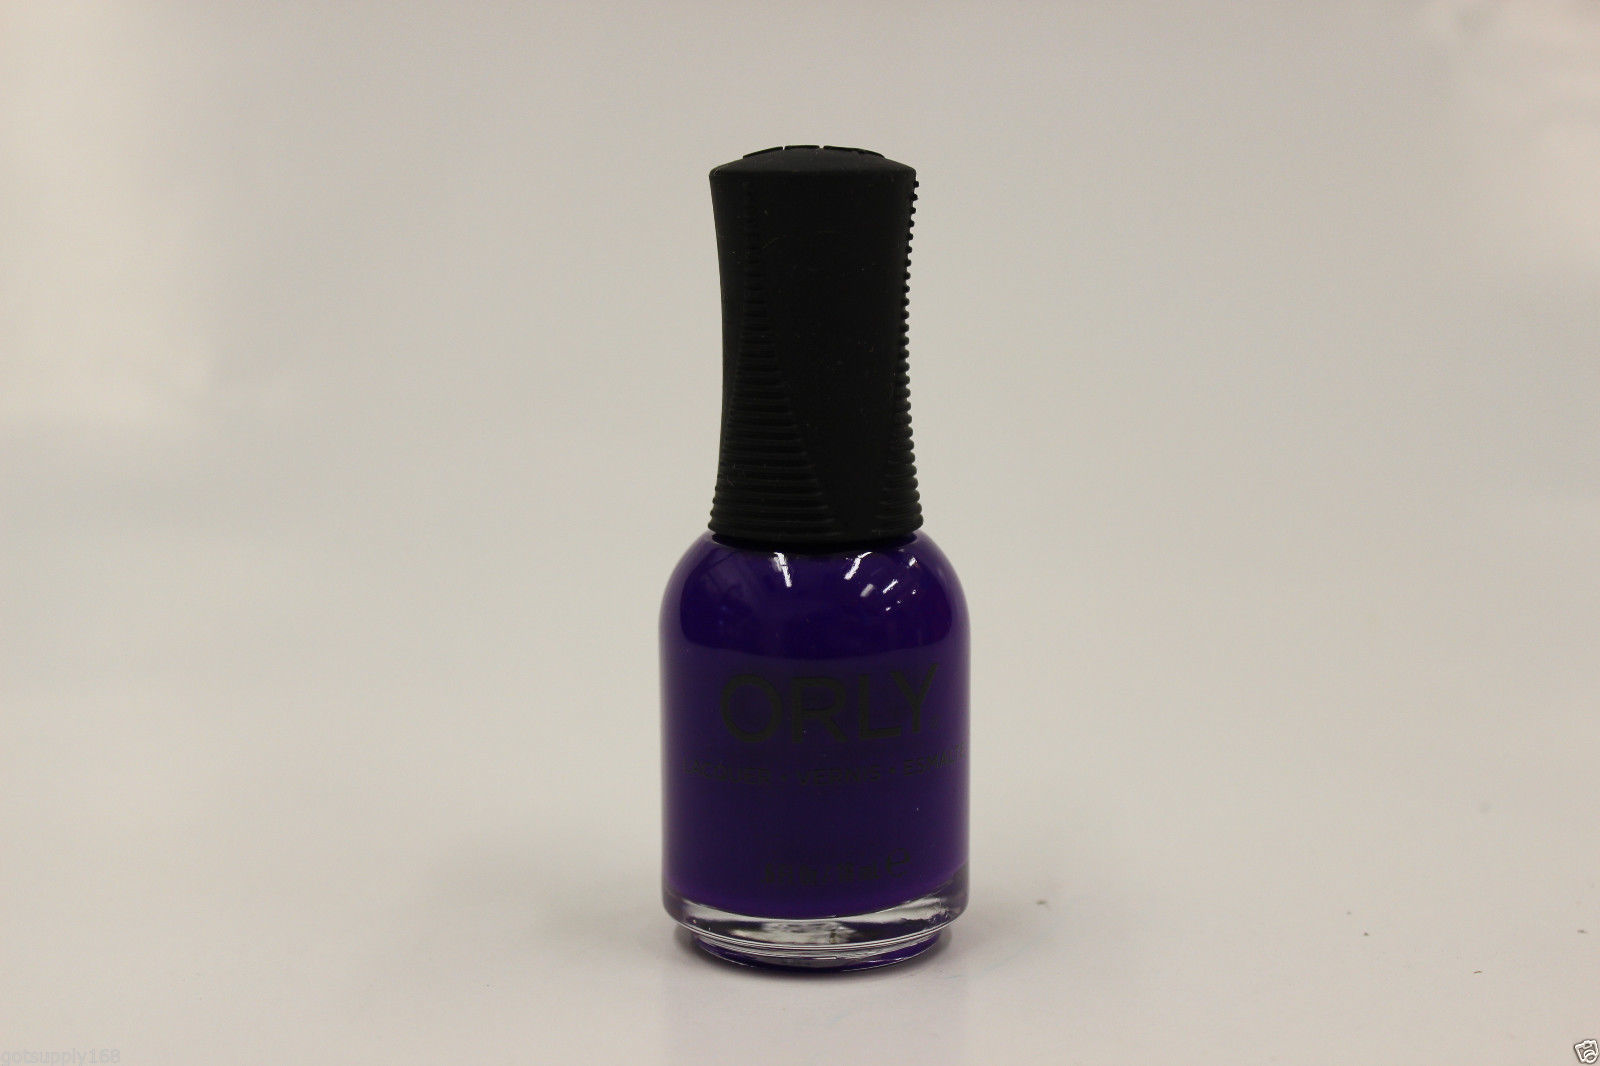 Primary image for 20499 - Orly Nail Lacquer - SATURATED .6oz